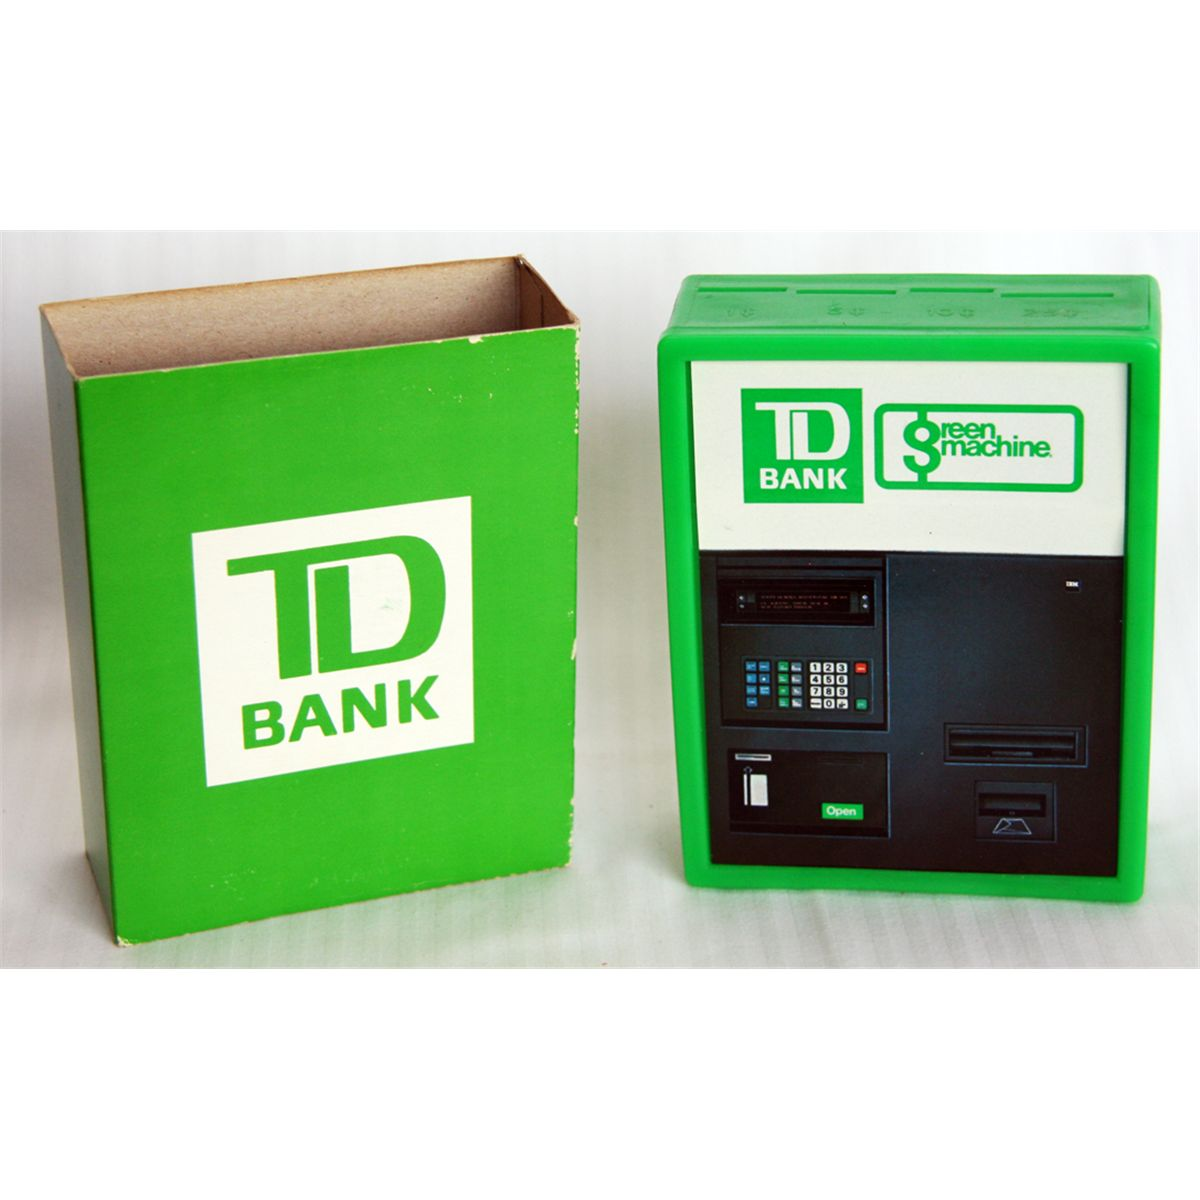 T D  BANK  Green Machine  A rectangular green plastic bank in the shape of  the T D green machine  Fo